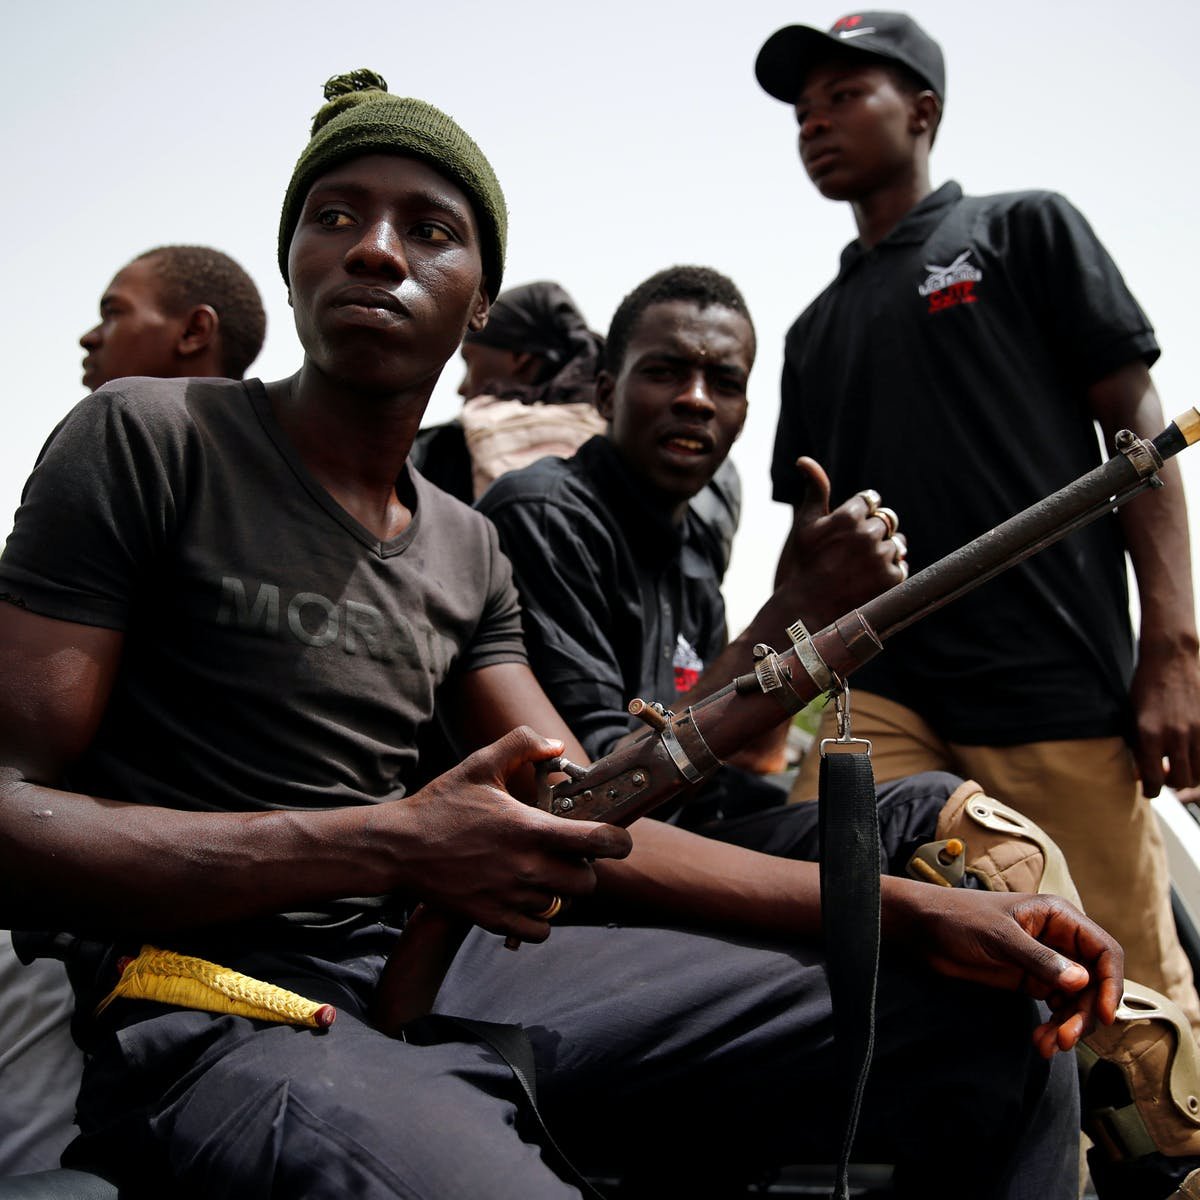 Vigilantism is flourishing in Nigeria – with official support